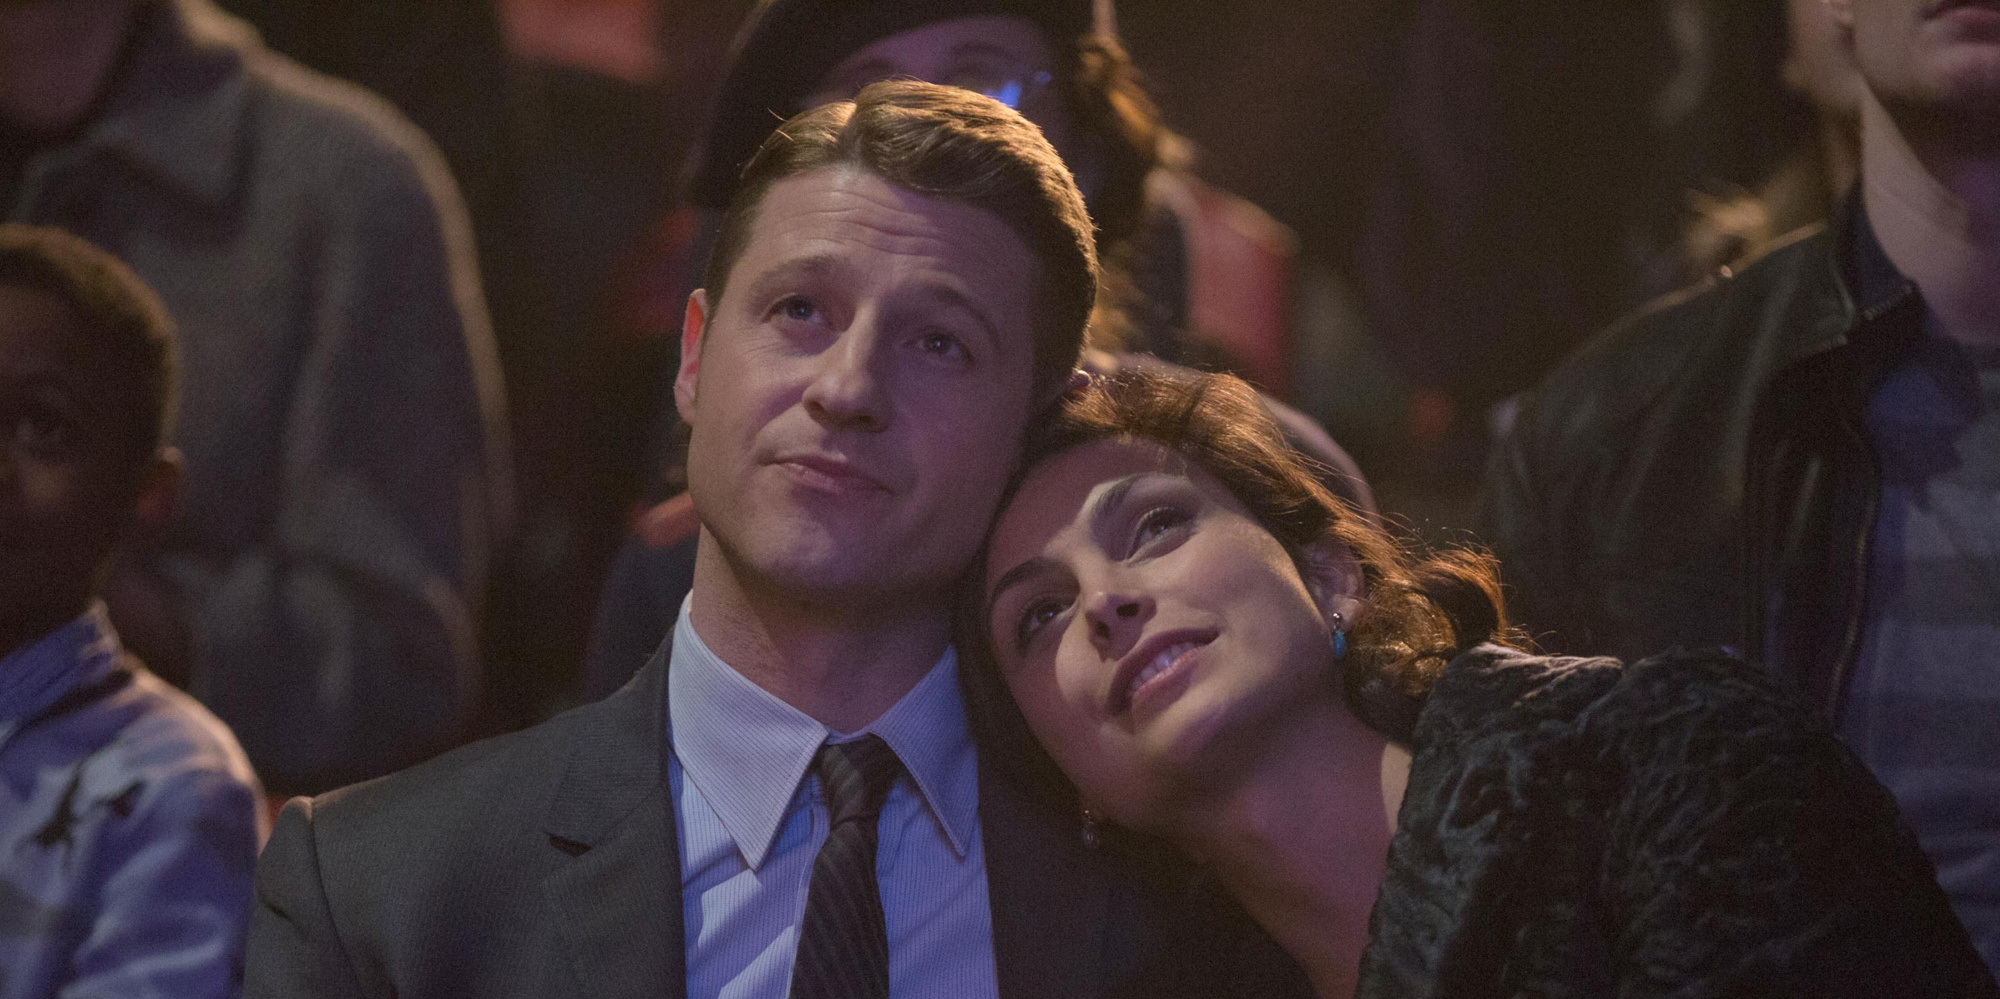 TV Couples Who Dated IRL Gordon and Leslie Gotham - On Gotham , Ben McKenzie and Morena Baccarin – who both also appeared on The O.C. – portrayed husband and wife. In real life, the actors welcomed a daughter in 2016 and tied the knot in 2017.